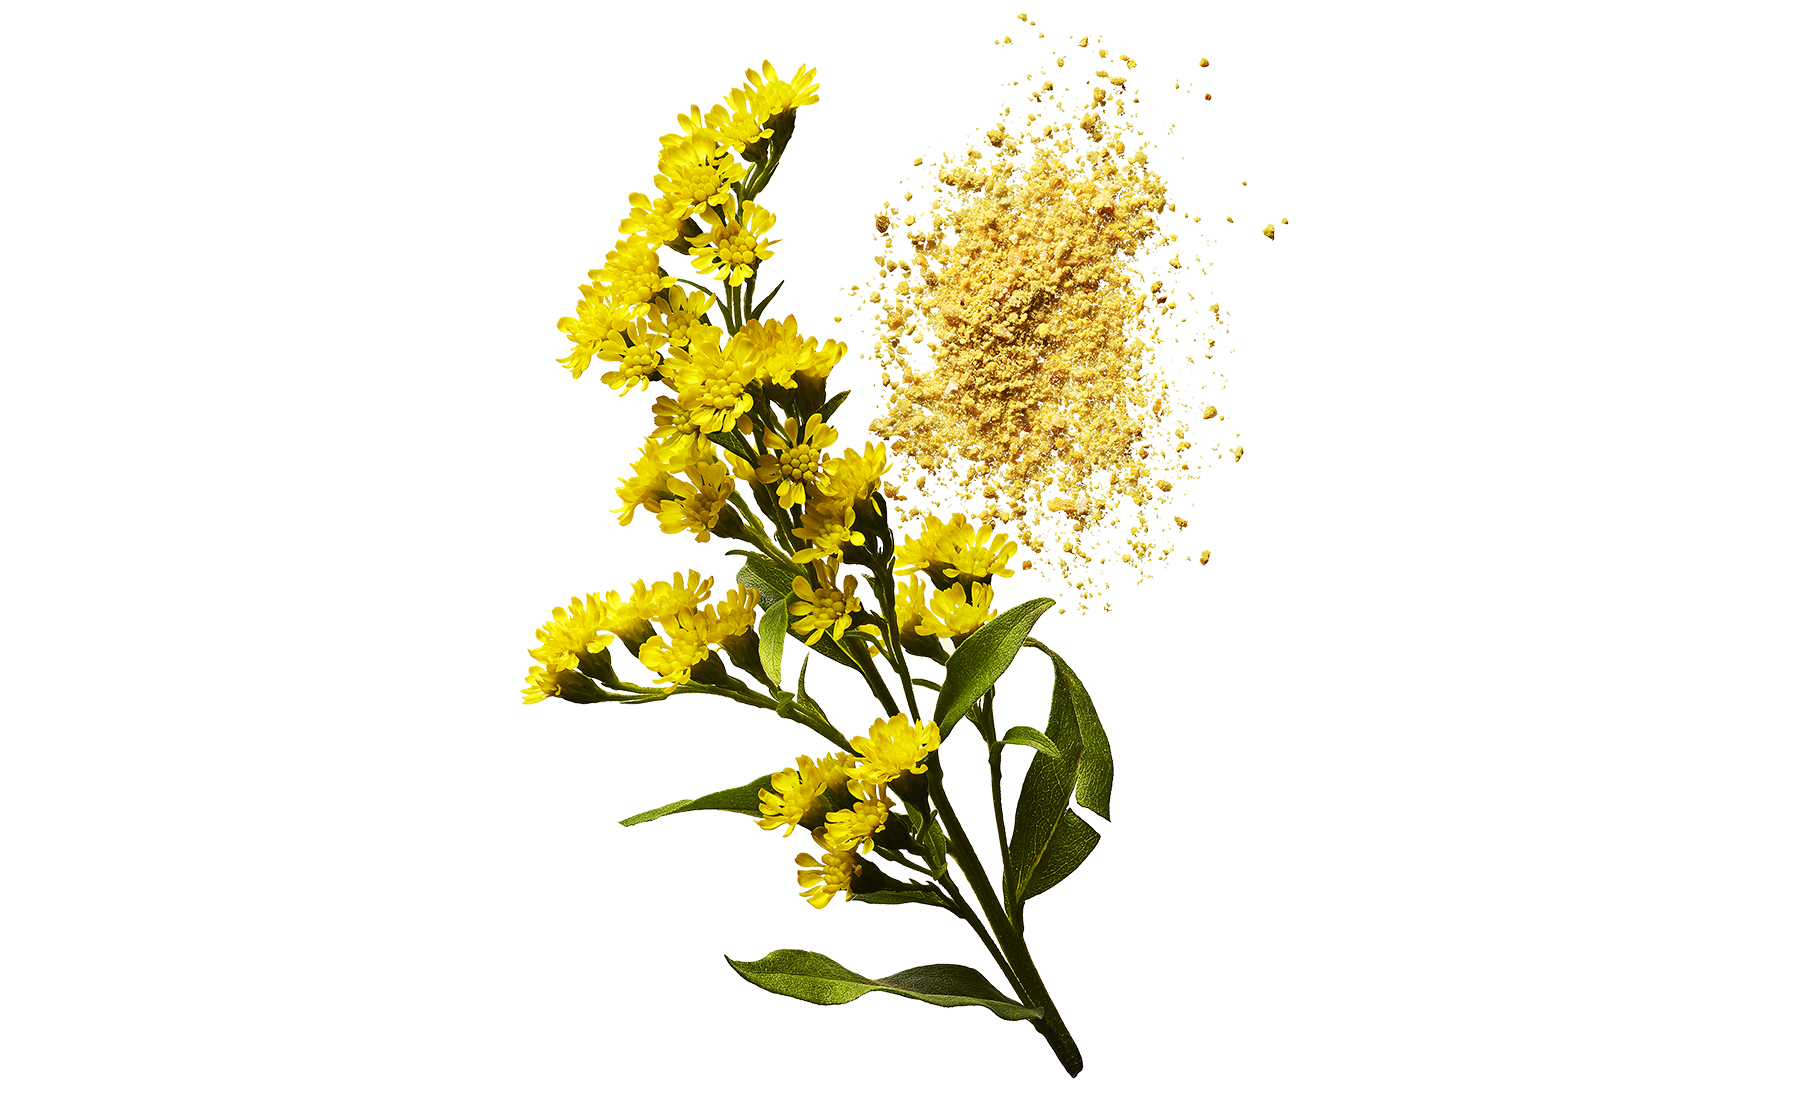 Yellow flowers and pollen